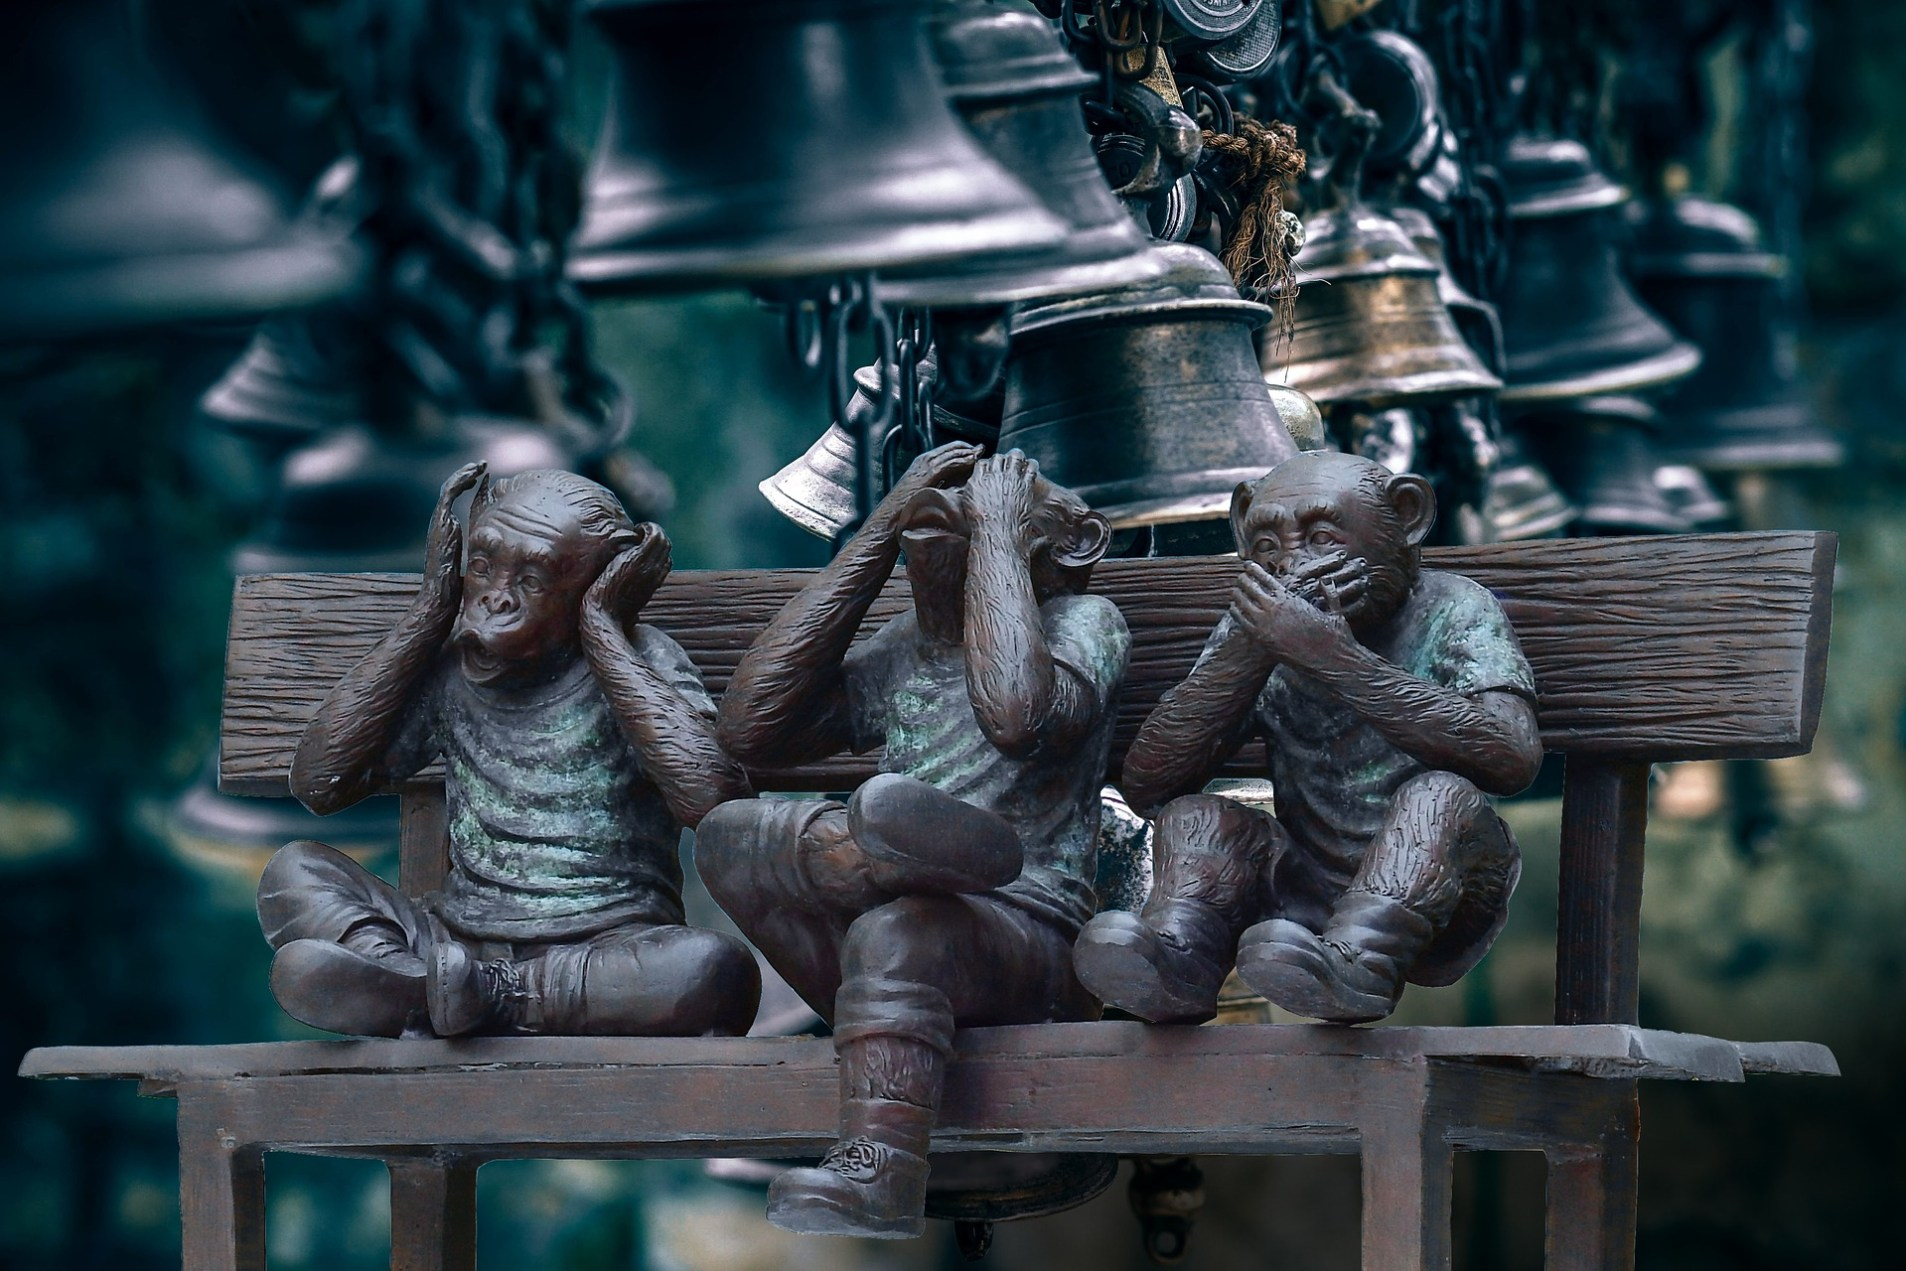 Hear No evil, see no evil, speak no evil - and bad music might be the worst kind of evil.